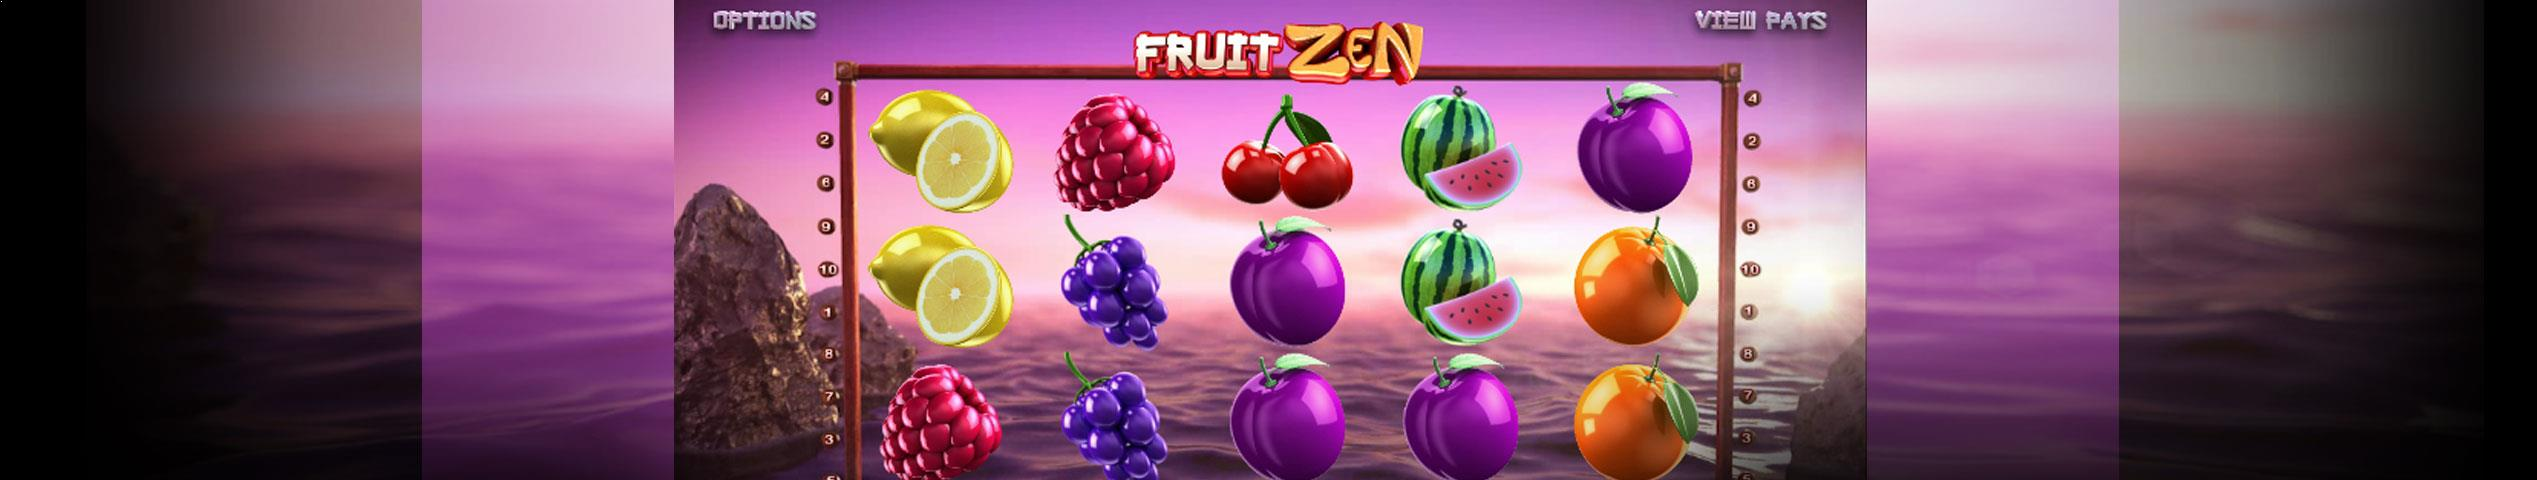 Fruit Zen Multa Baft jocuri slot slider Betsoft